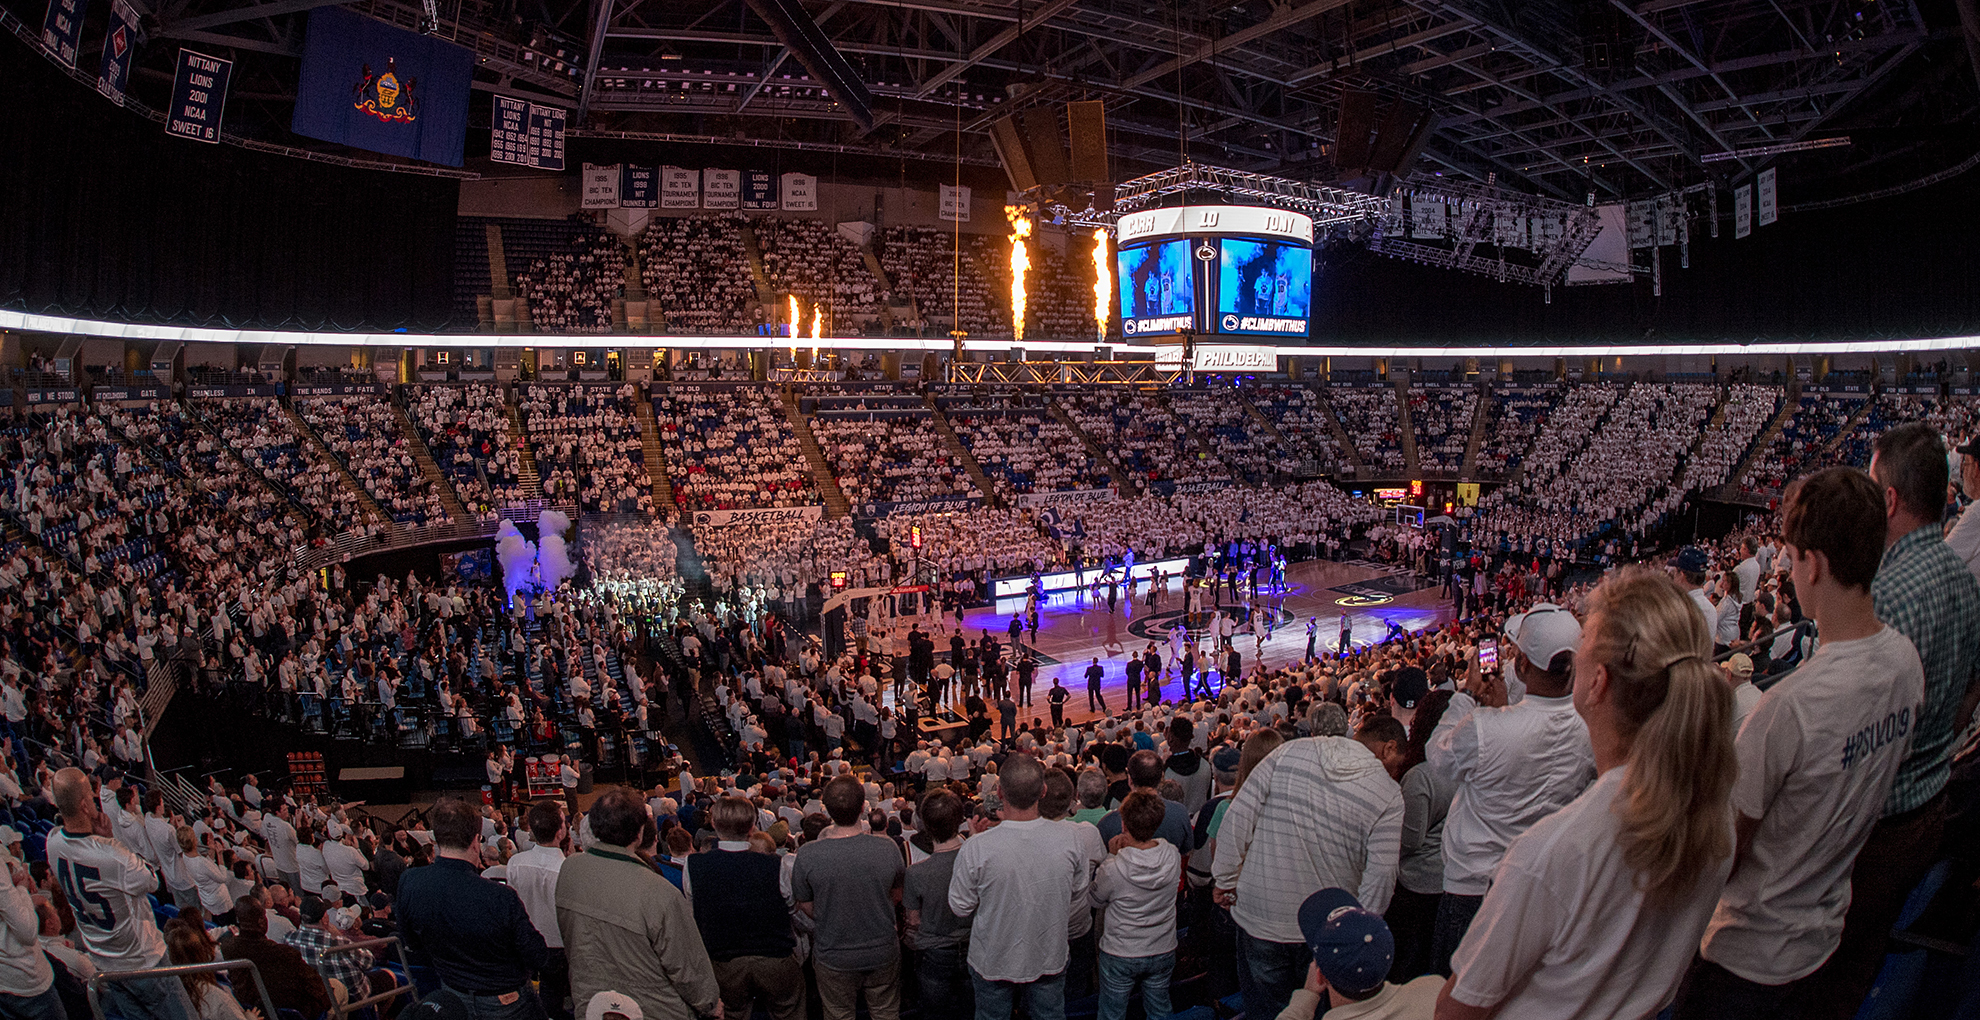 BJC Set to Welcome Fans for Nittany Lions' Season Opener ... Map Of Bryce Jordan Center on map of arco arena, map of van andel arena, map of seven springs mountain resort, map of fitzgerald theater, map of verizon wireless arena, map of la sports arena, map of mgm grand garden arena, map of york fair, map of burton coliseum, map of germain arena, map of ppl park, map of john paul jones arena, map of bramlage coliseum, map of pinnacle bank arena, map of time warner cable arena, map of value city arena, map of blue cross arena, map of delaware state fair, map of matthew knight arena, map of first niagara pavilion,